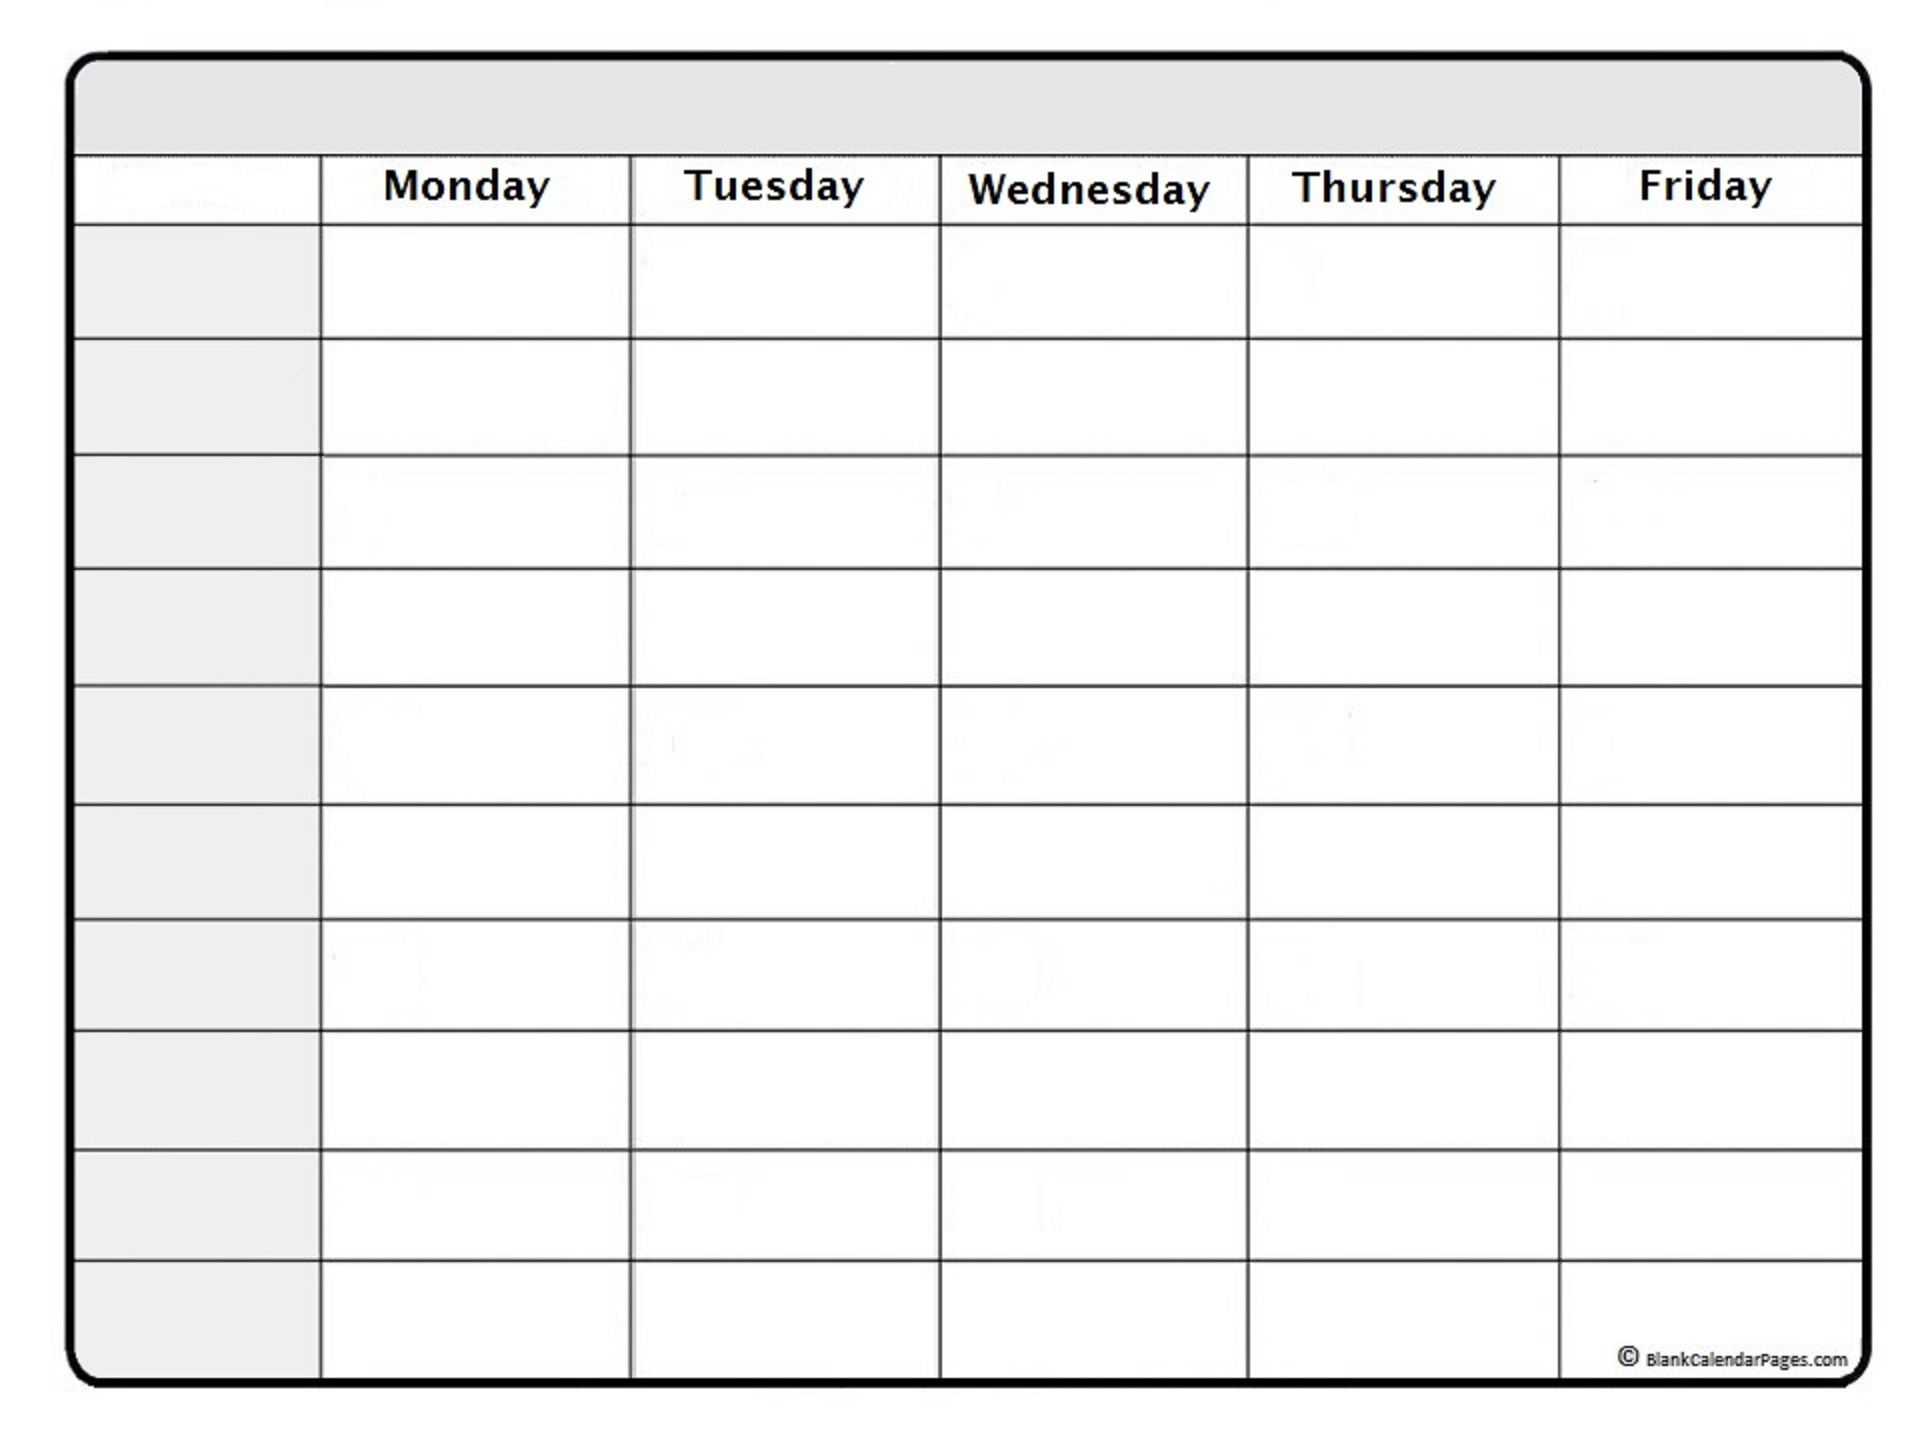 003 Shocking Blank Weekly Calendar Template Picture  Word Microsoft 2019Full